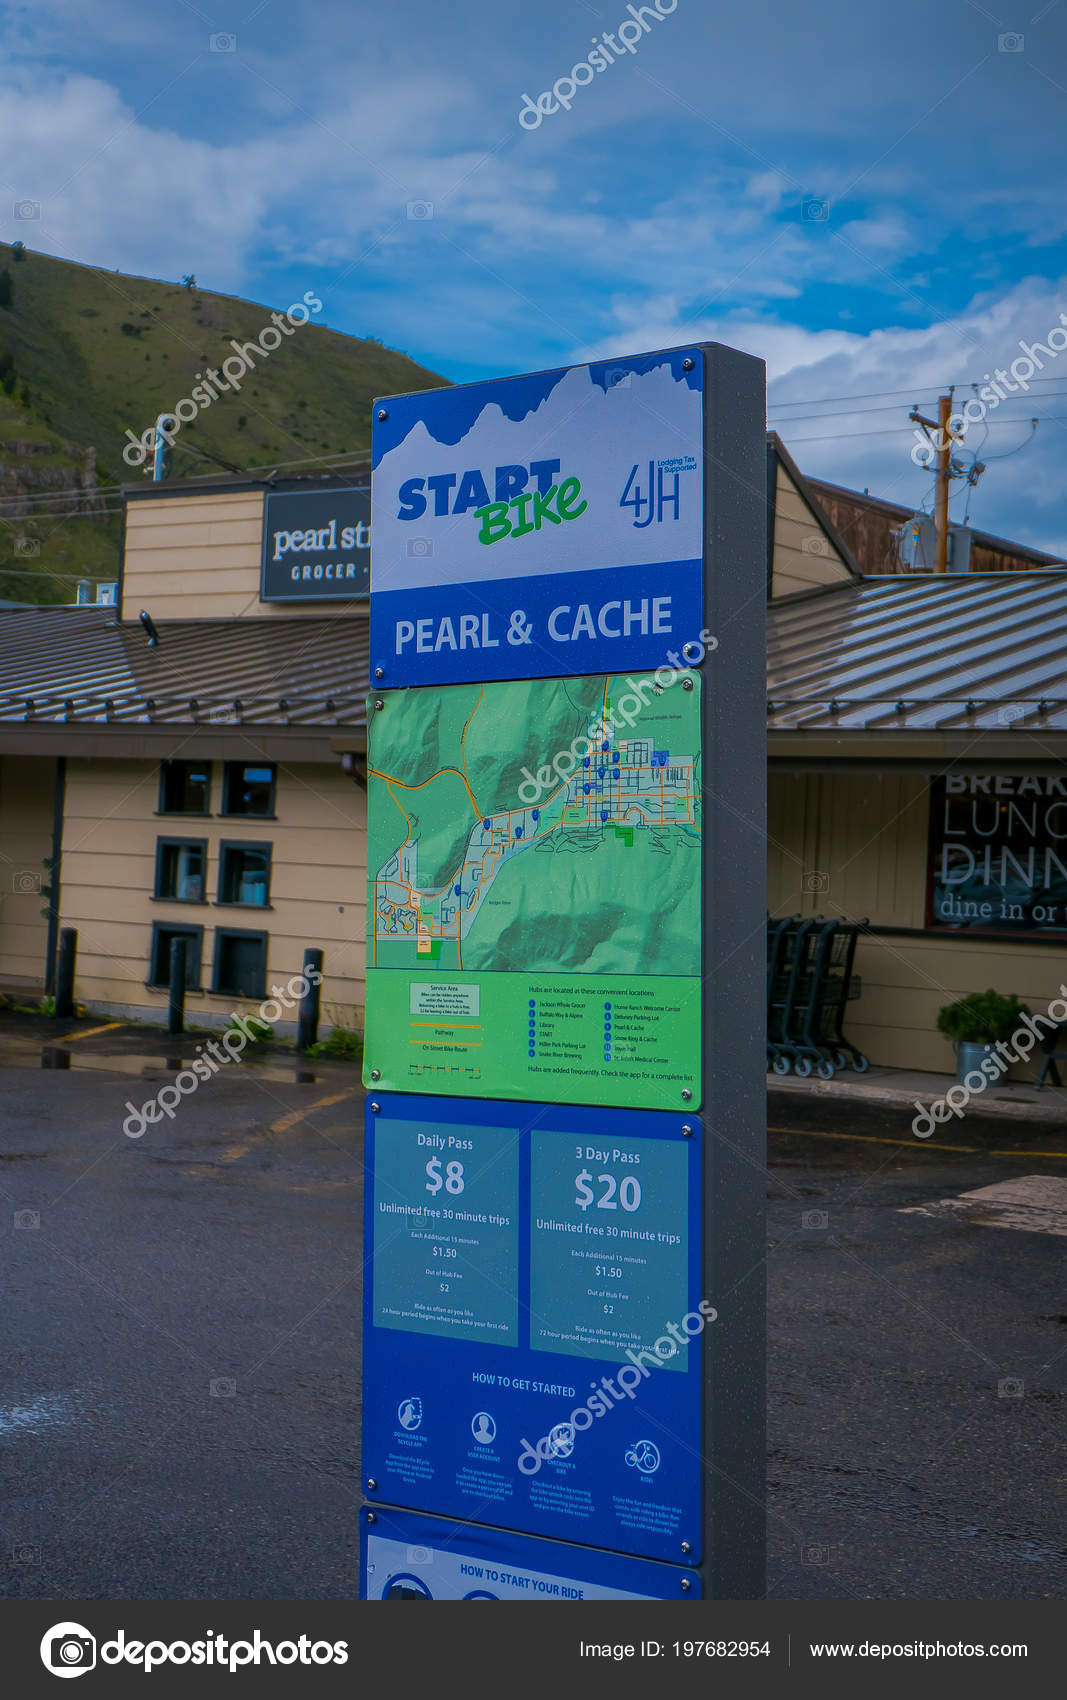 JACKSON HOLE, WYOMING, USA - MAY 23, 2018: Outdoor view of ...